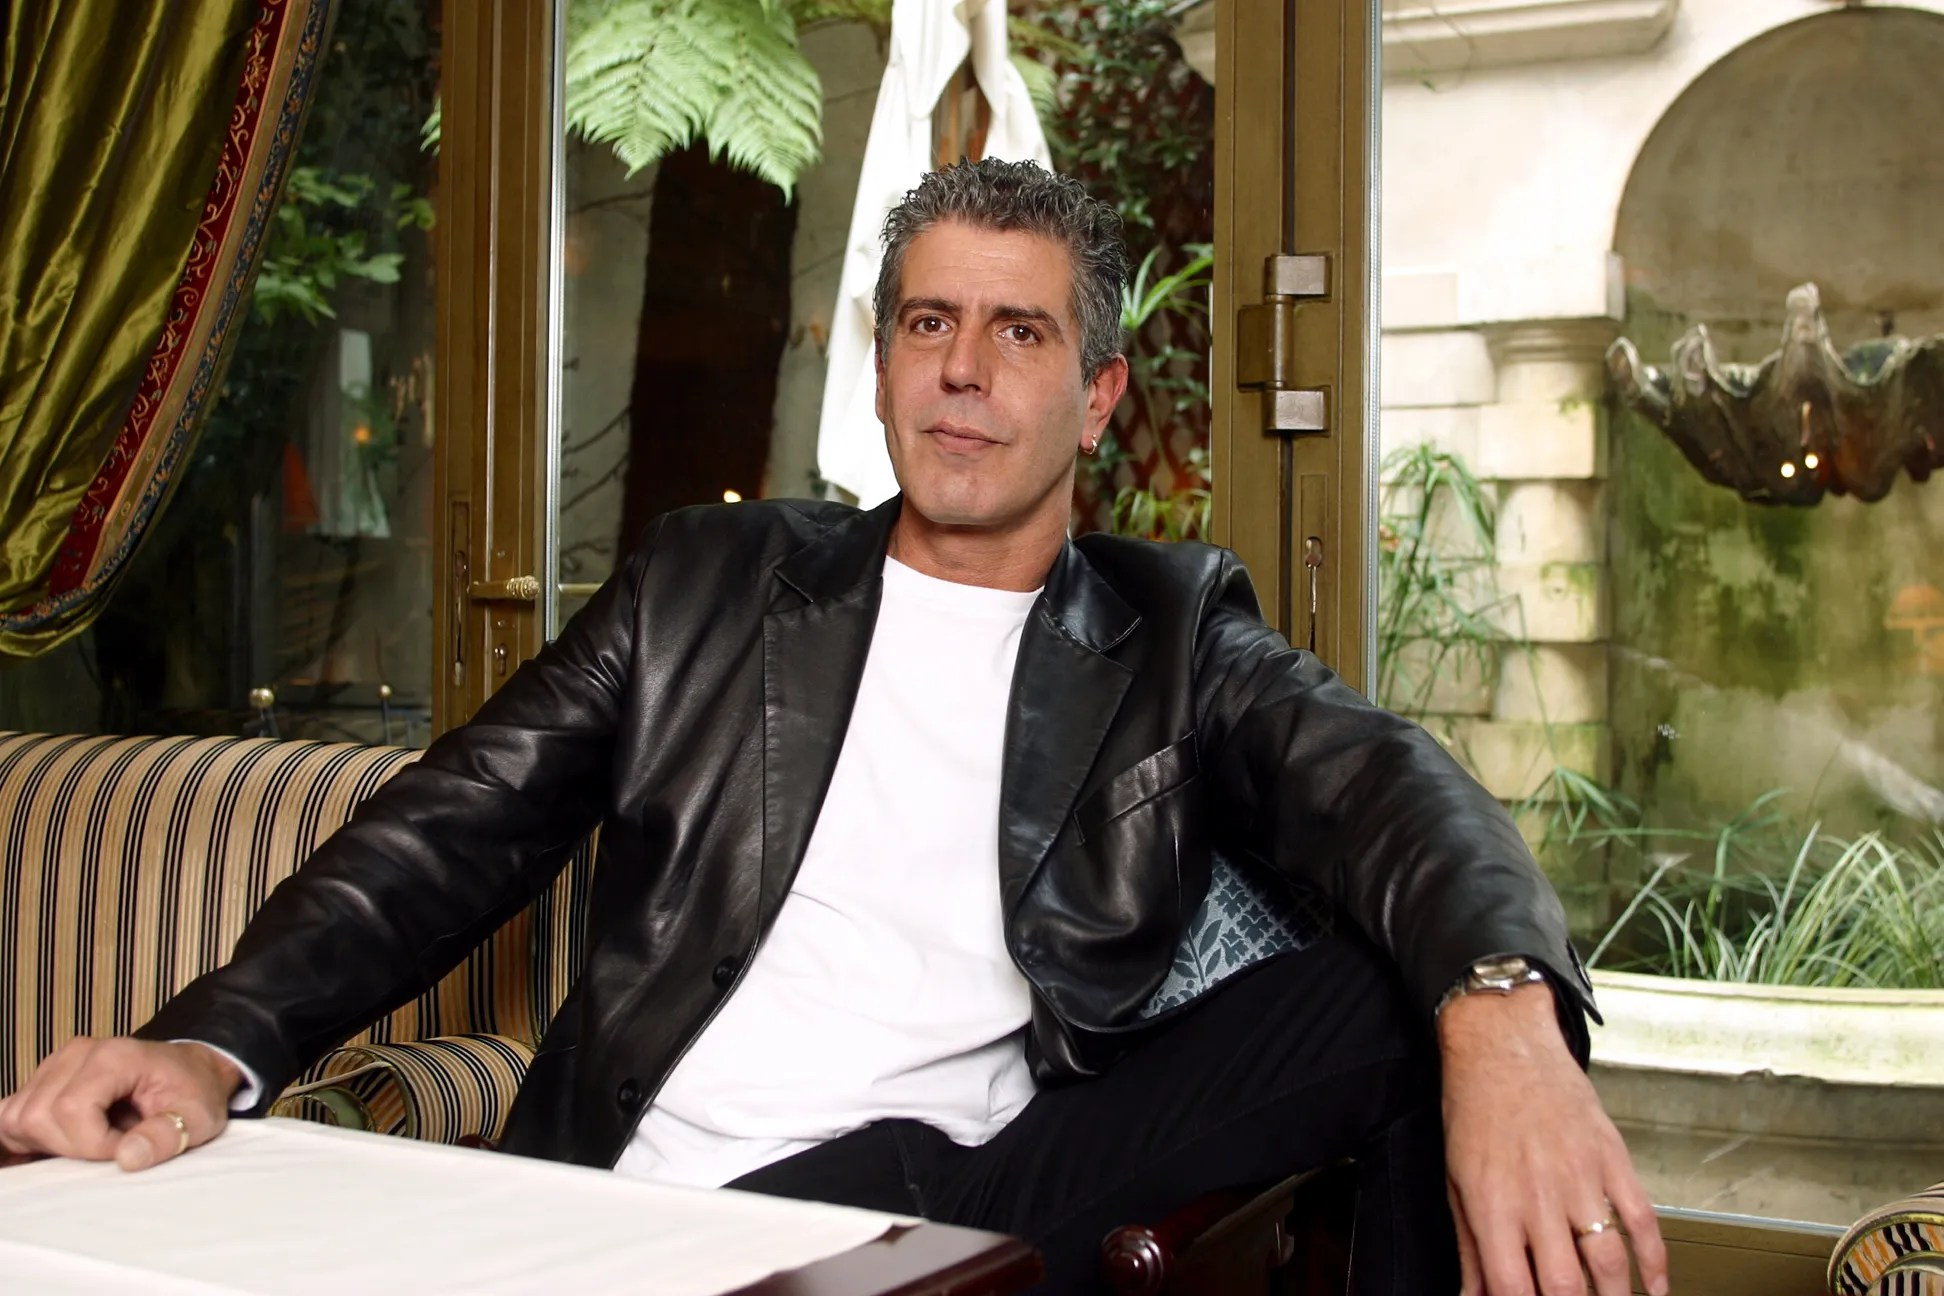 anthony bourdain was the